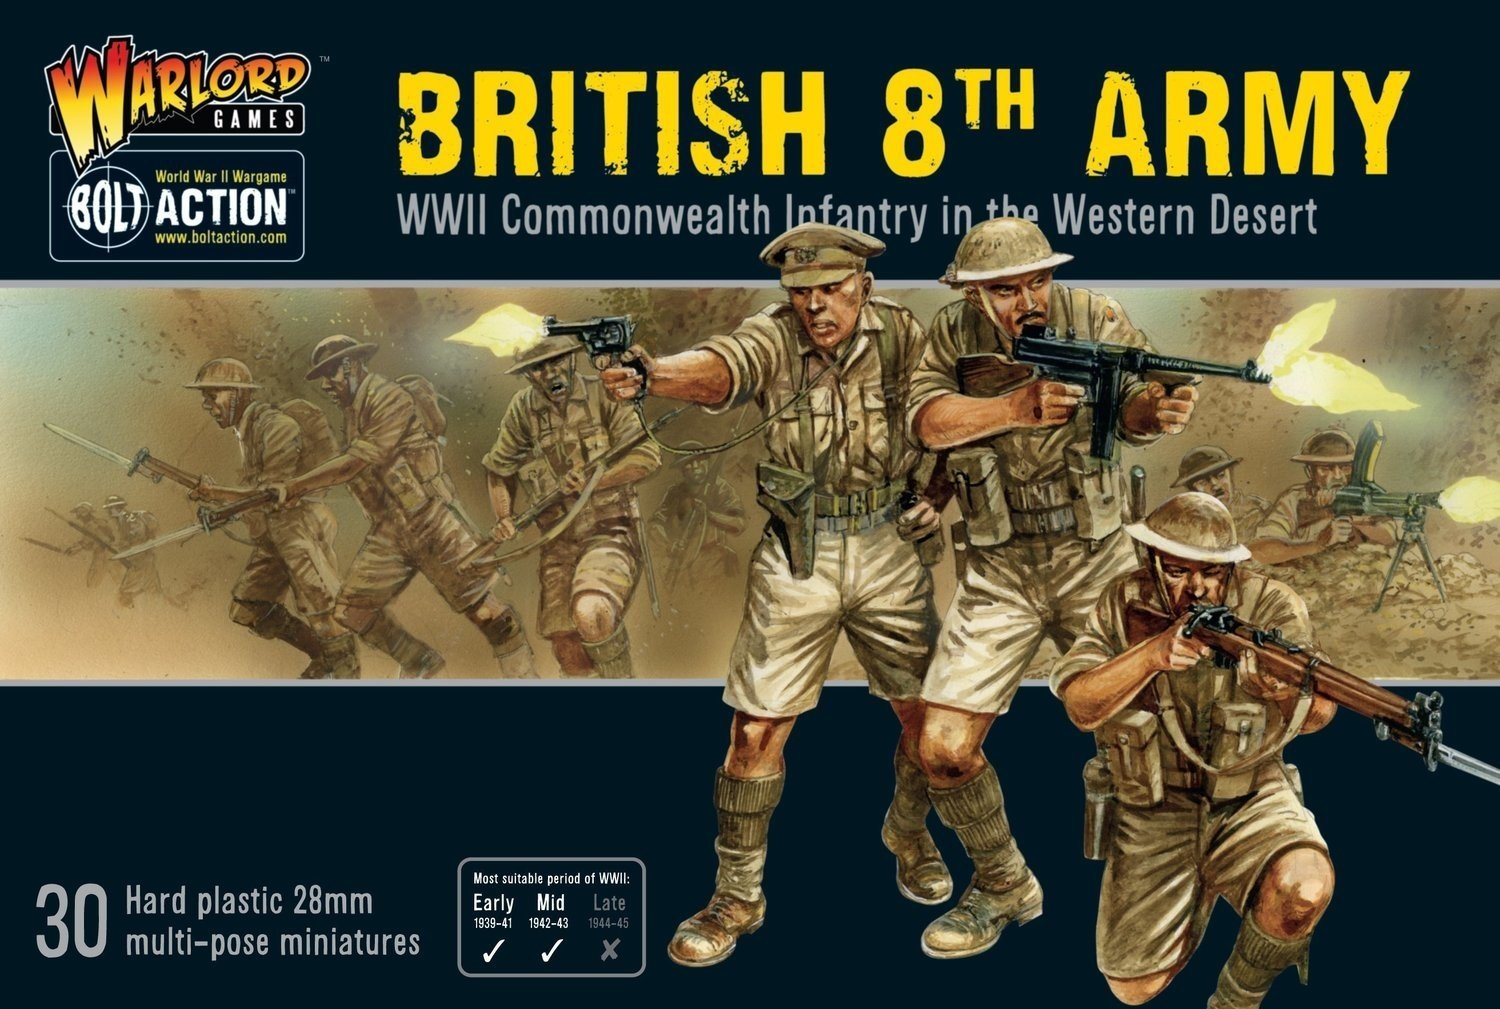 British 8th Army